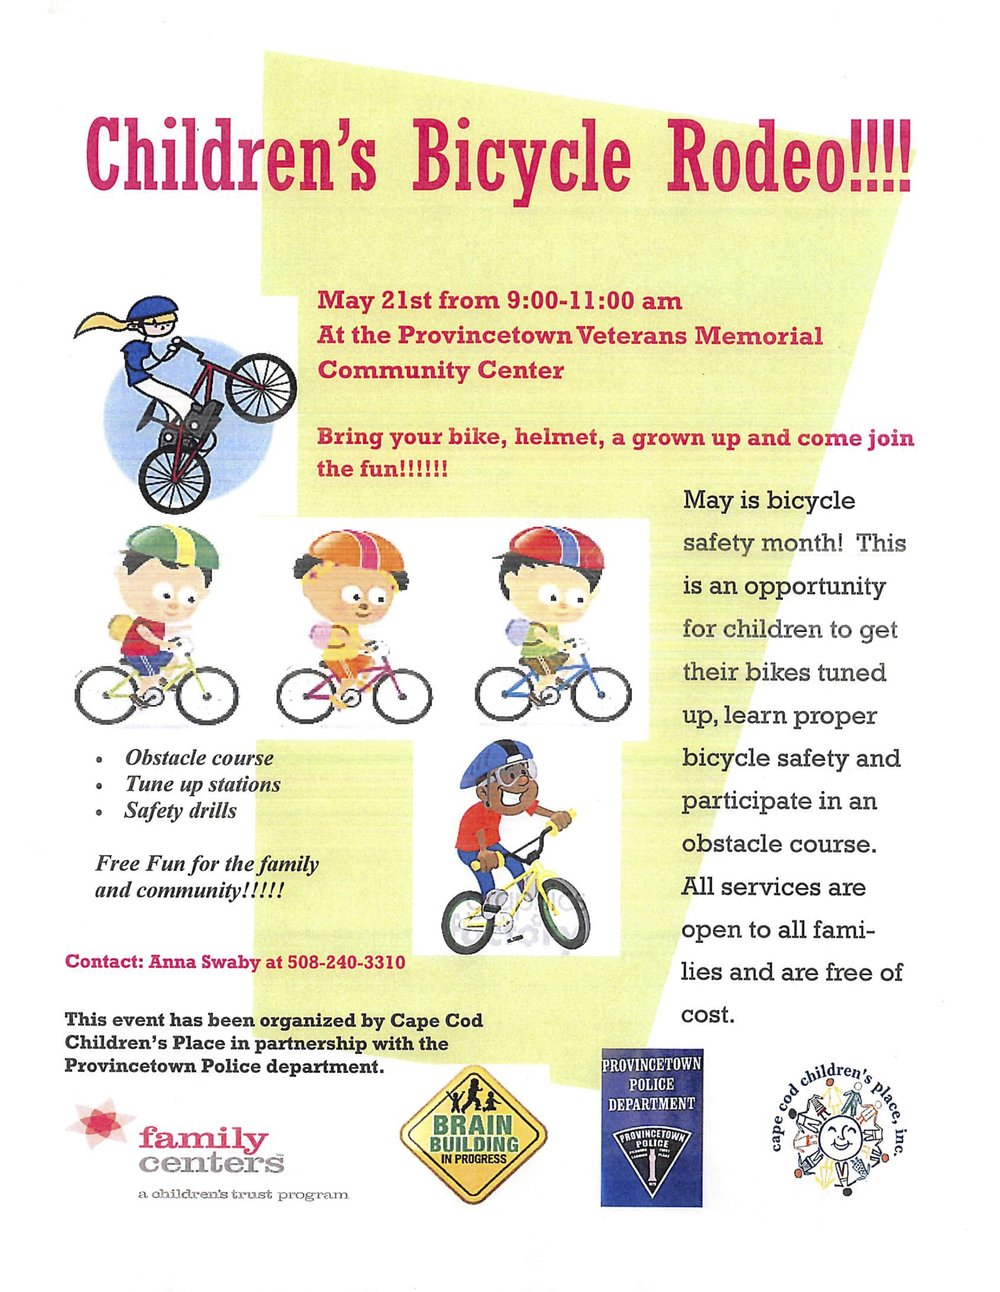 Childrens-Bicycle-Rodeo.jpg